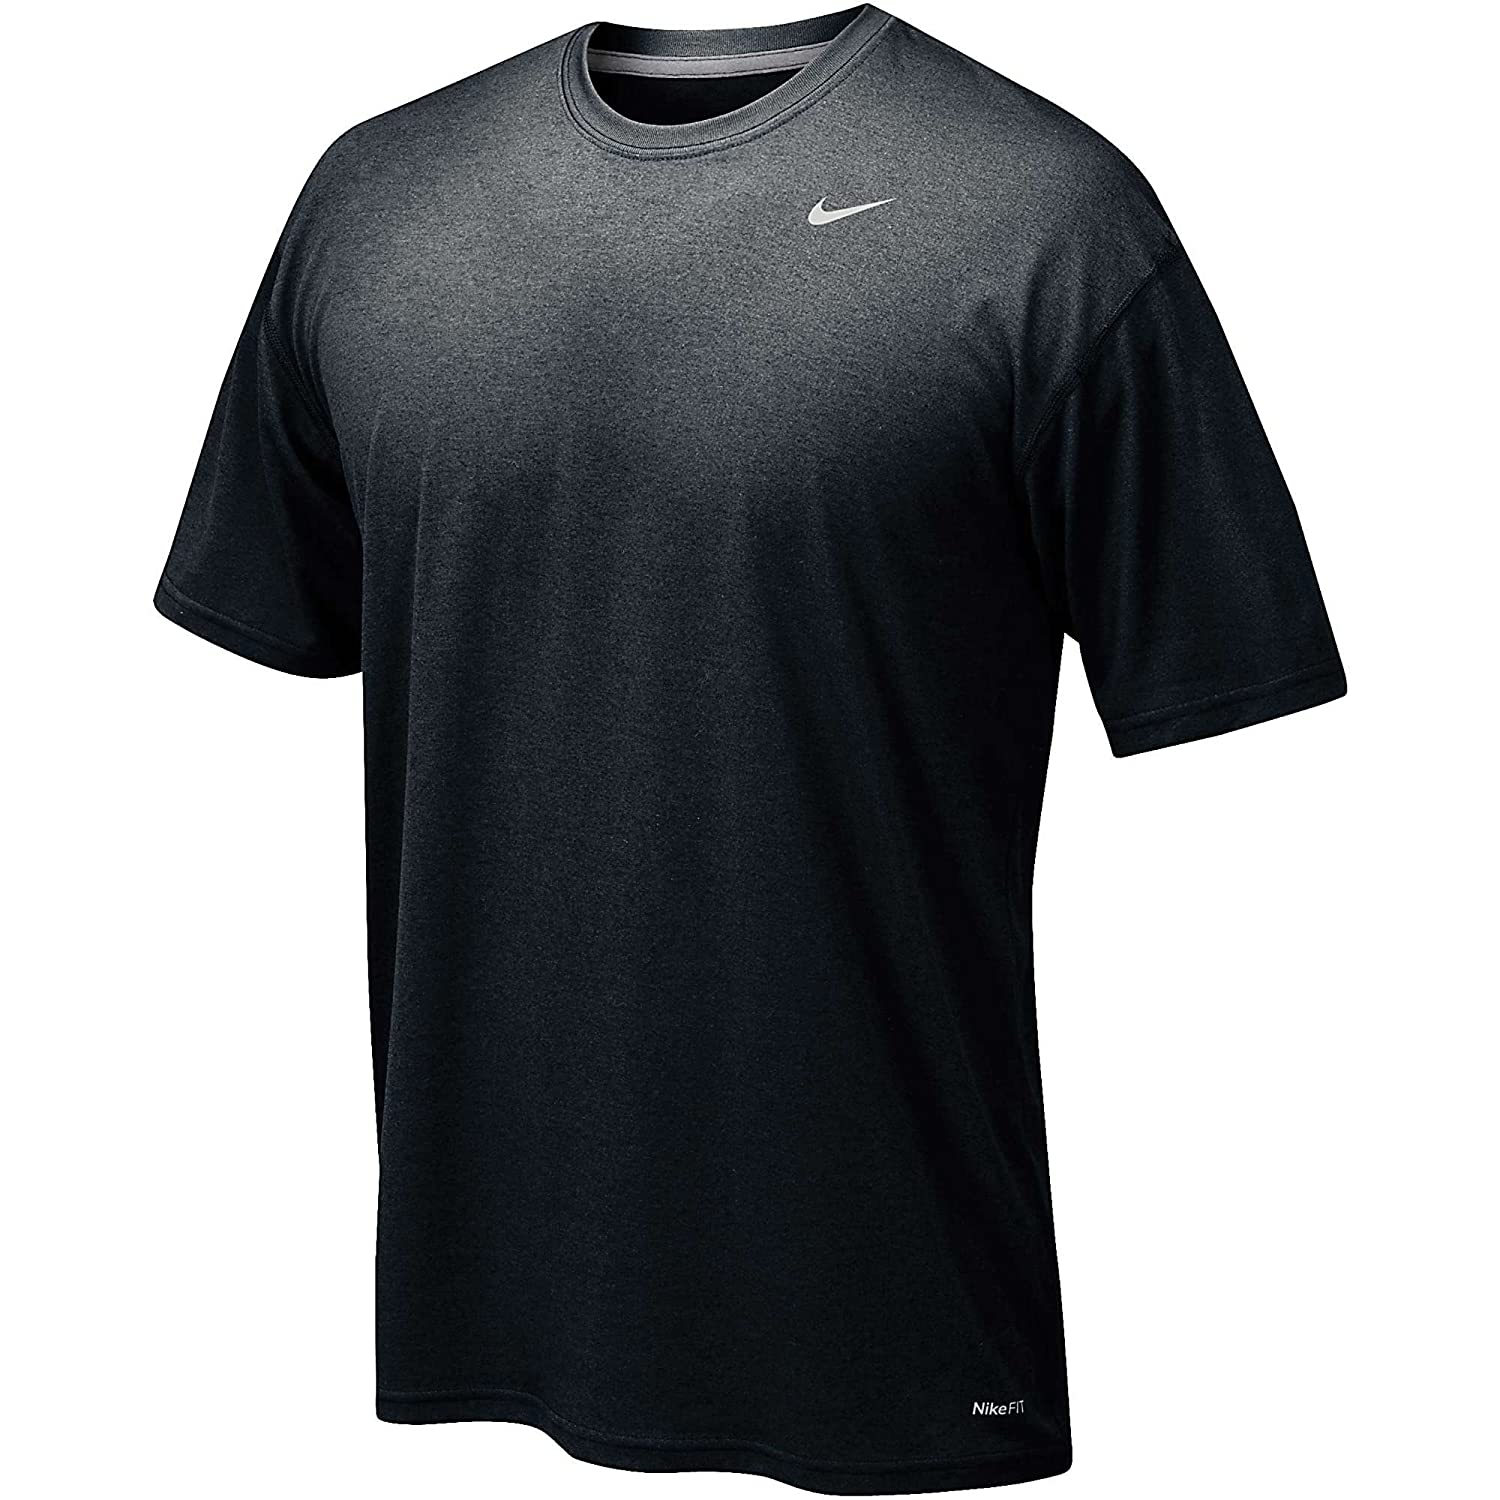 7cf5be8c9 NIKE Mens Legend Short Sleeve Tee at Amazon Men's Clothing store: